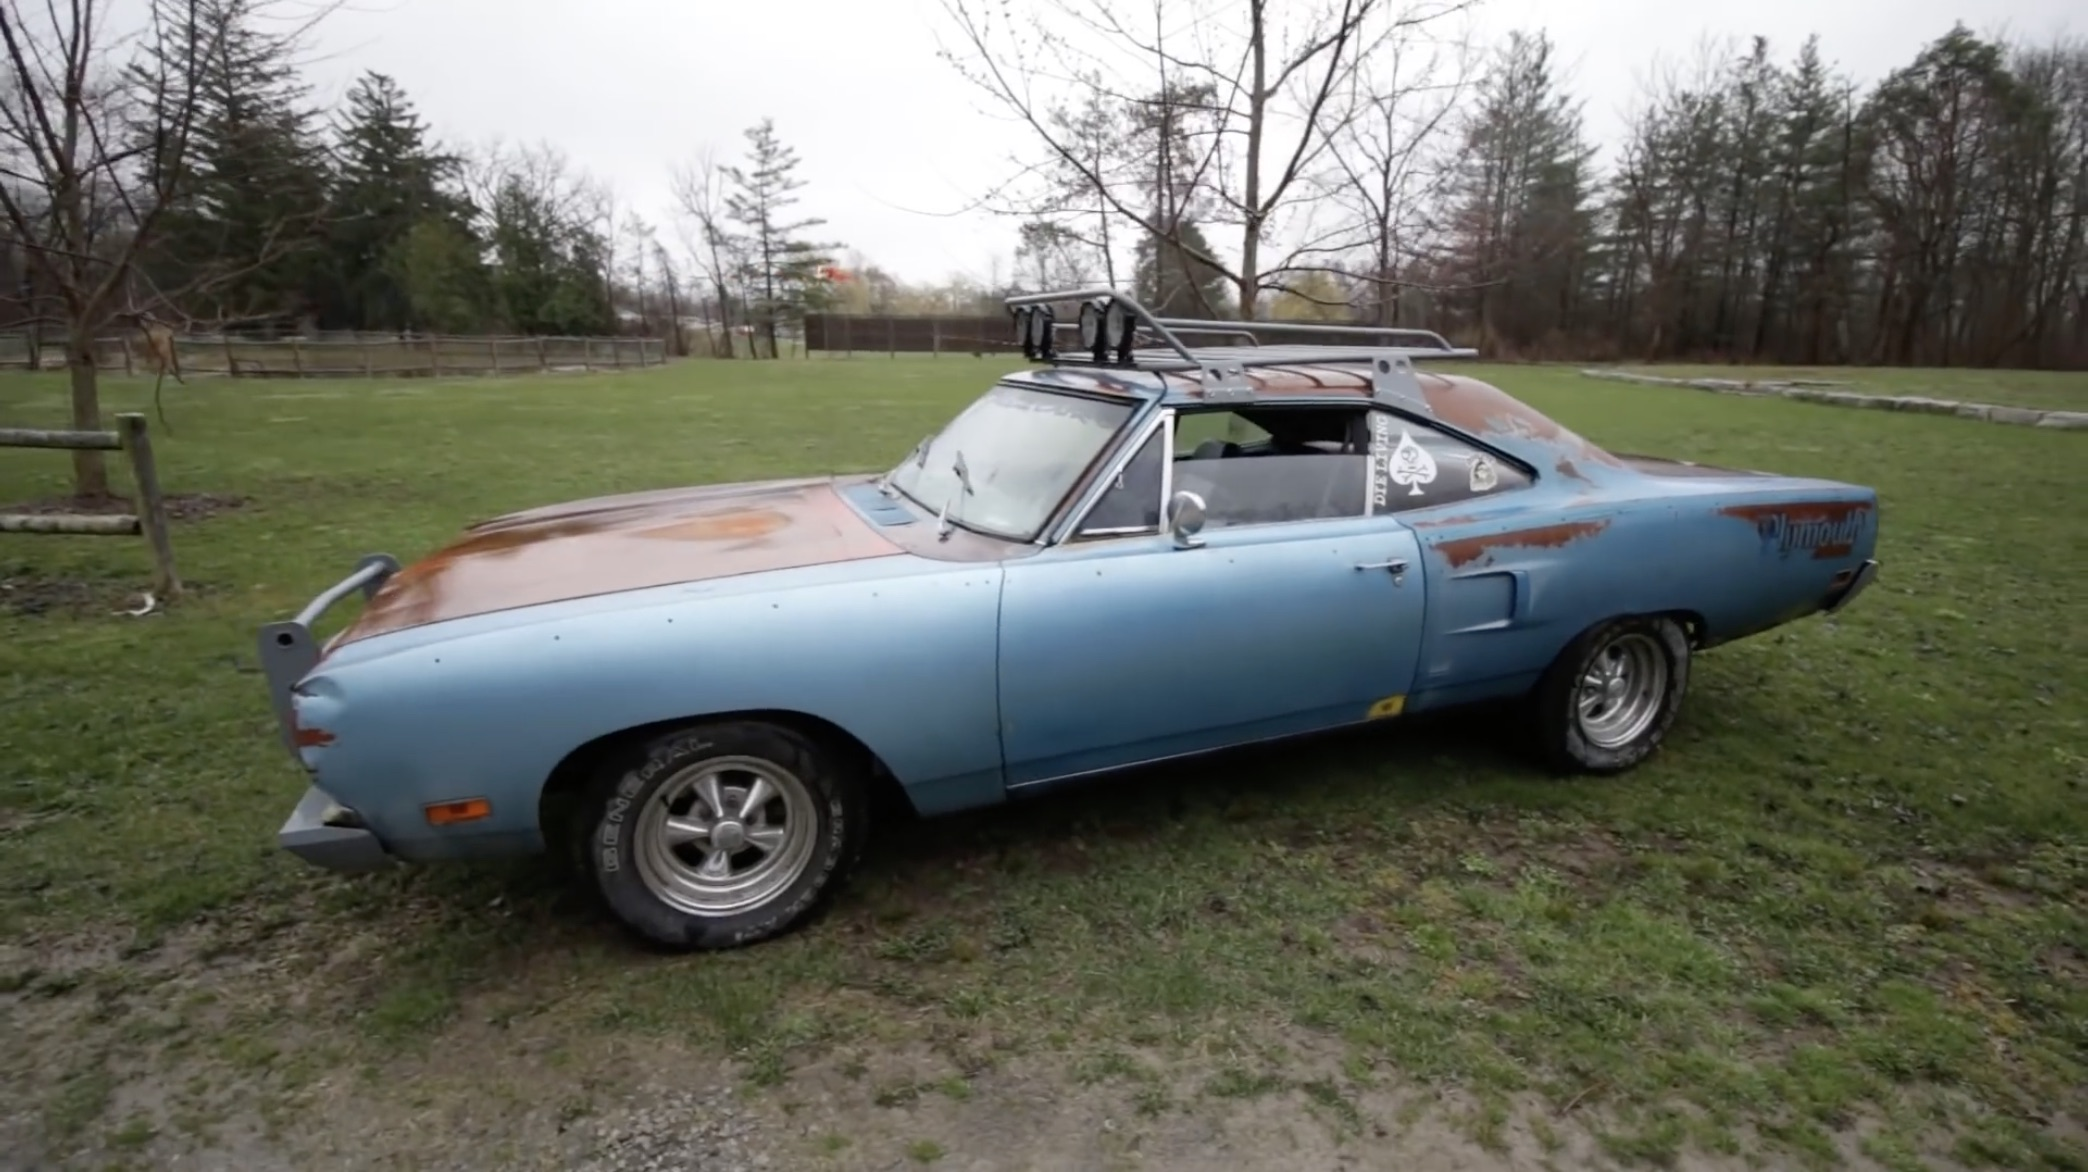 The Rusty Rattler: Check Out This Isuzu Diesel-Swapped 1970 Plymouth Satellite!